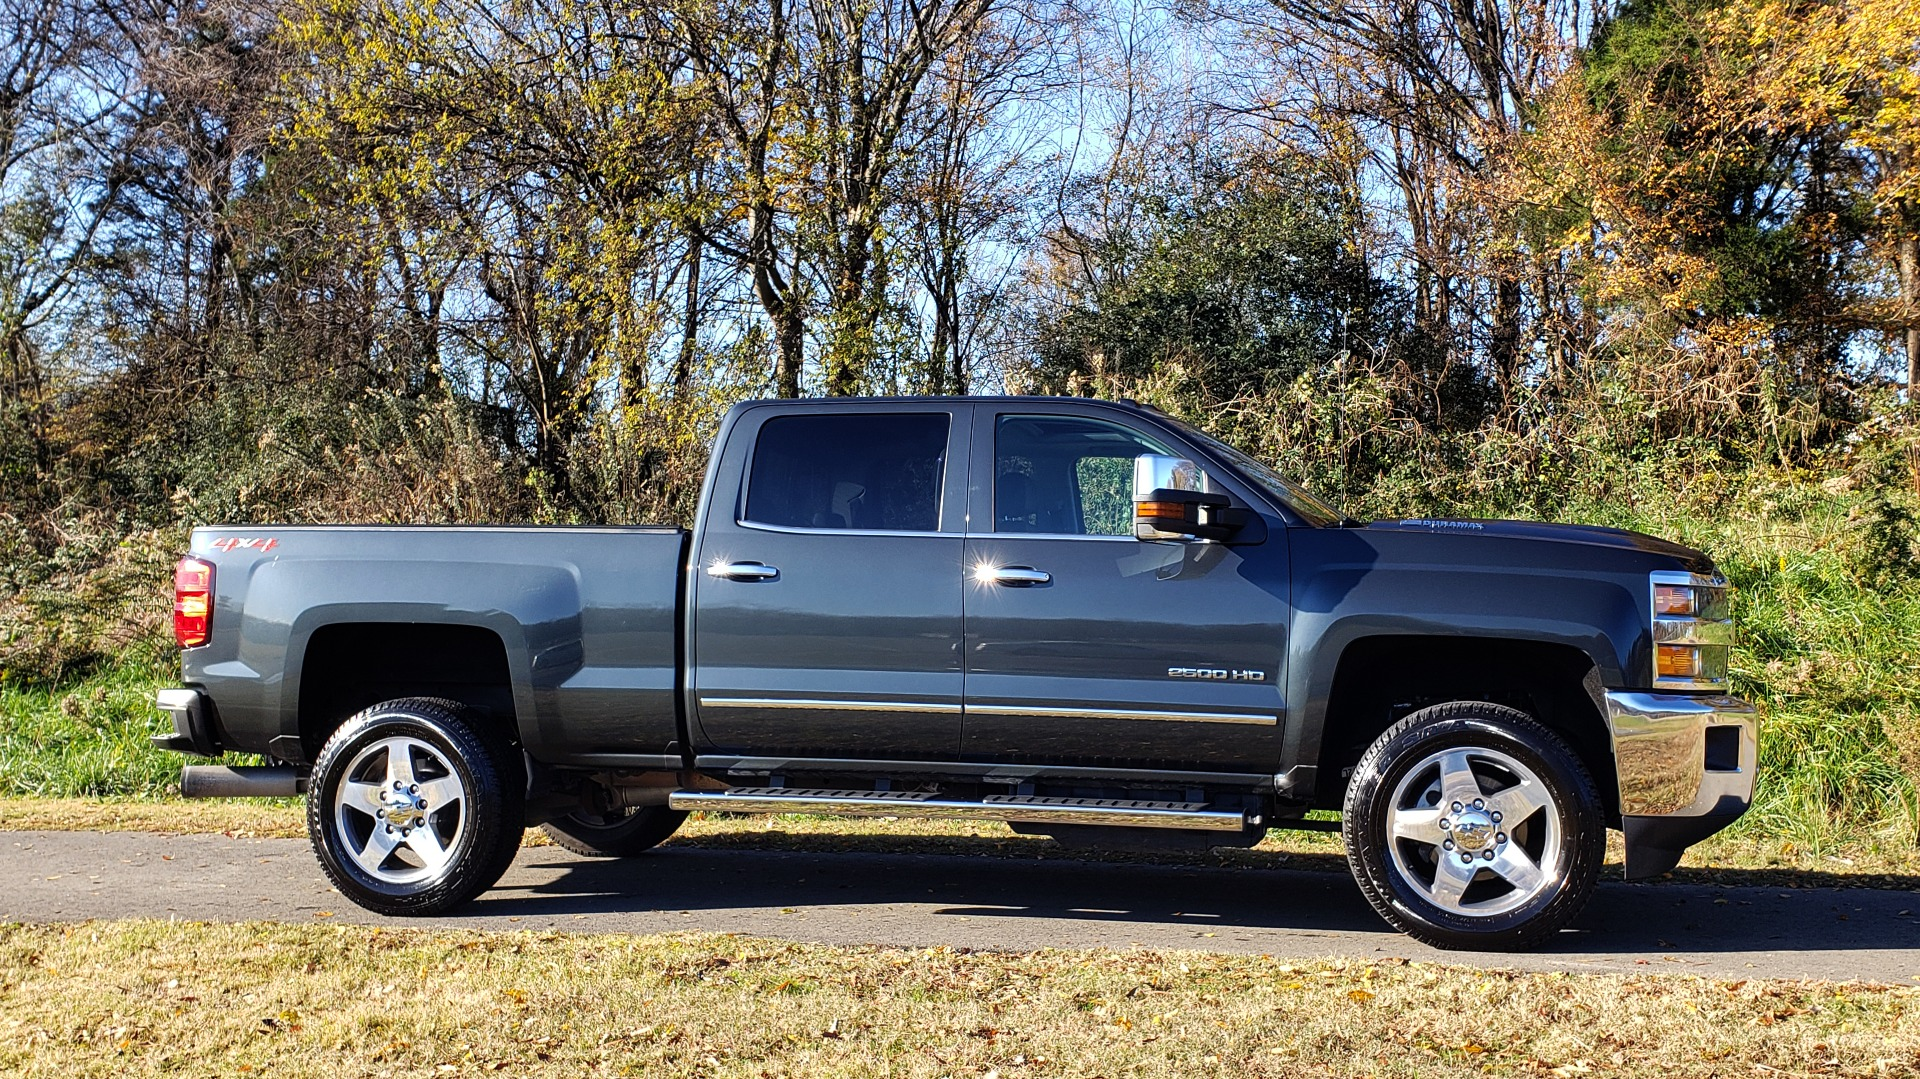 Used 2018 Chevrolet SILVERADO 2500HD LTZ 4WD CREWCAB / DURAMAX / ALLISON / NAV / BOSE / SUNROOF for sale Sold at Formula Imports in Charlotte NC 28227 5